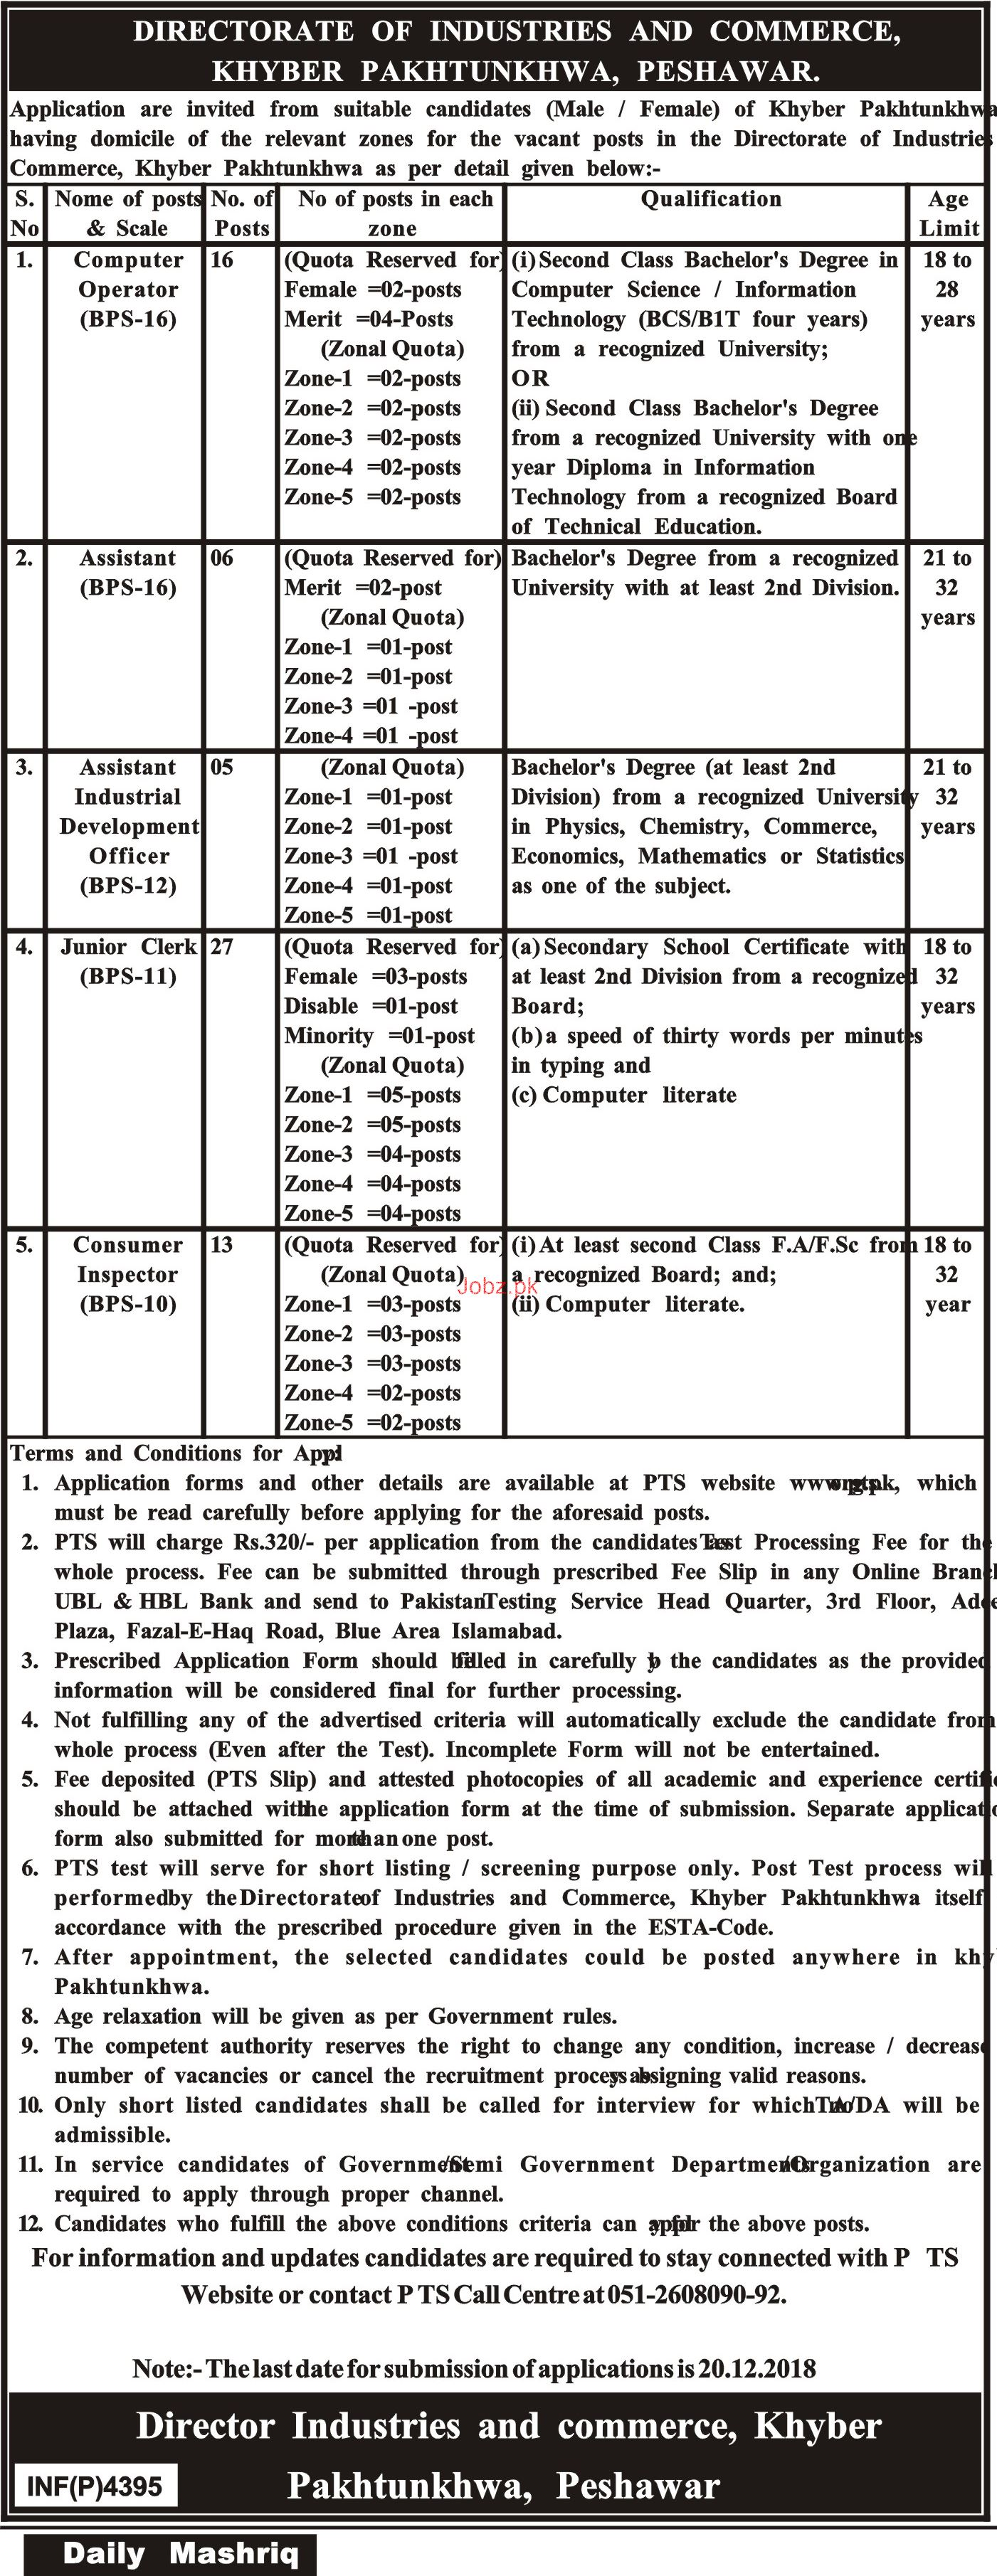 Directorate of Industries and Commerce KPK Peshawar Jobs